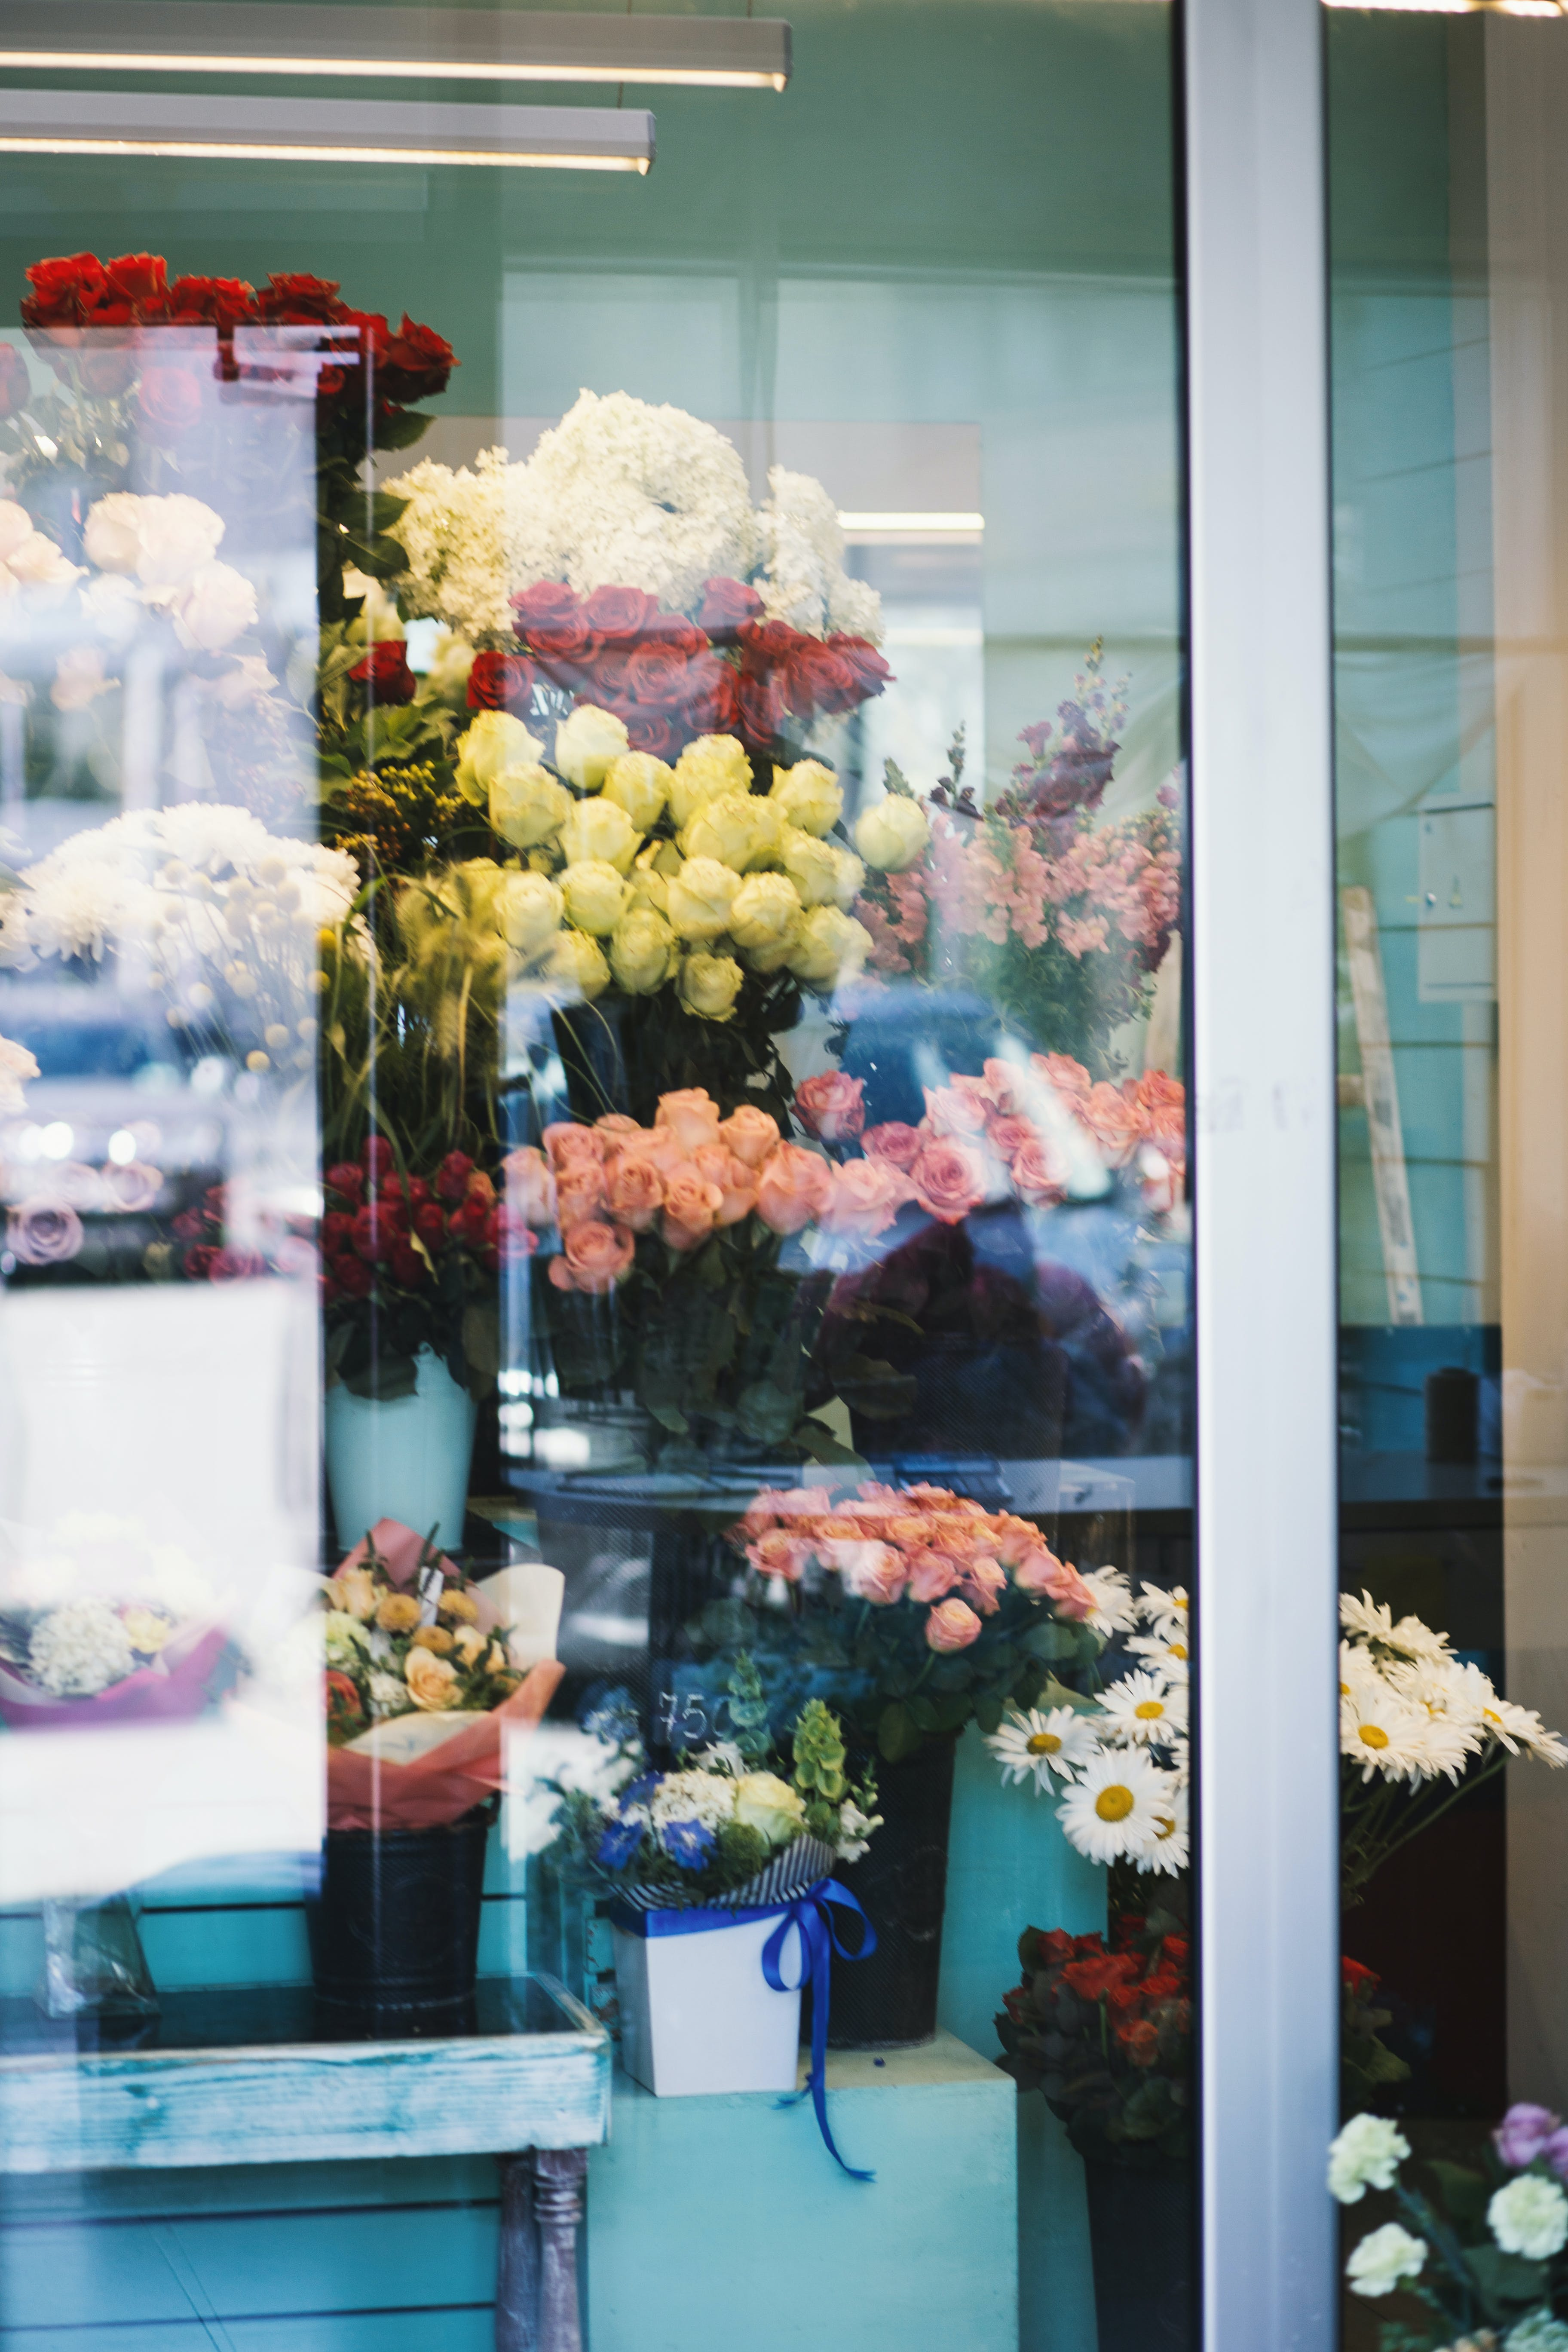 Assorted Flowers in Vases Inside Store